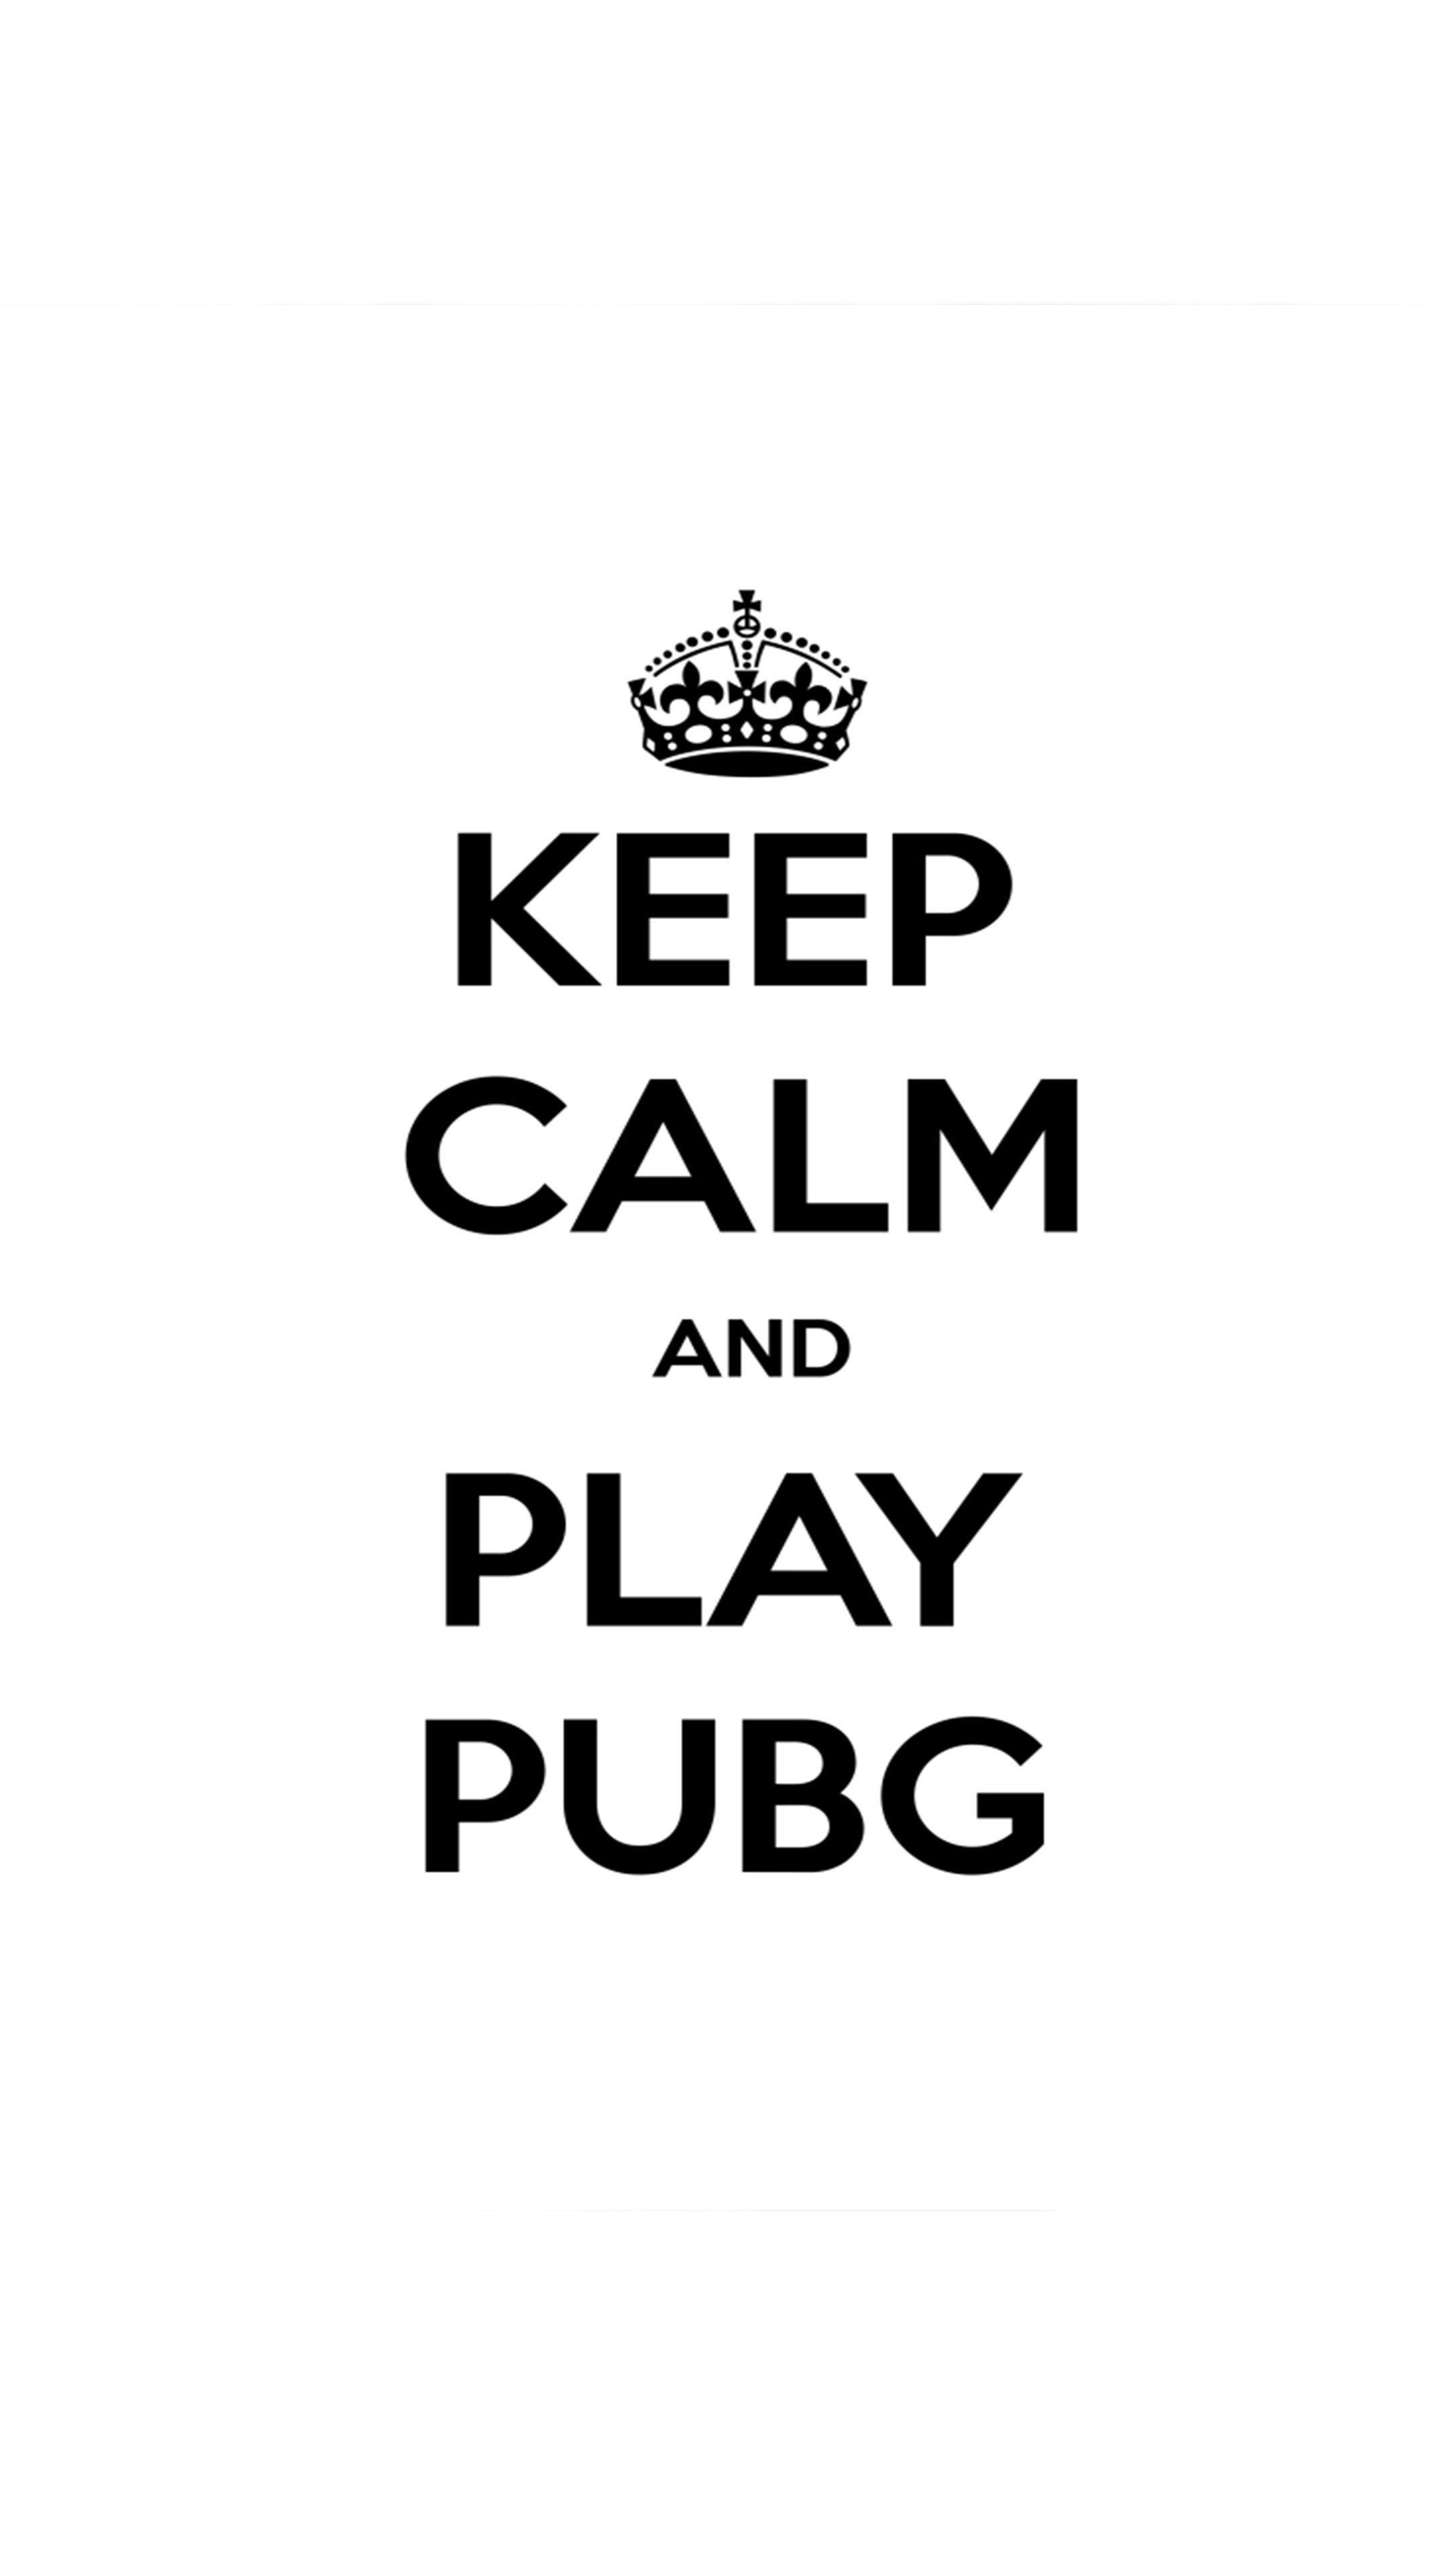 Games Wallpapers for Mobile Beautiful Keep Calm and Play Pubg Mobile